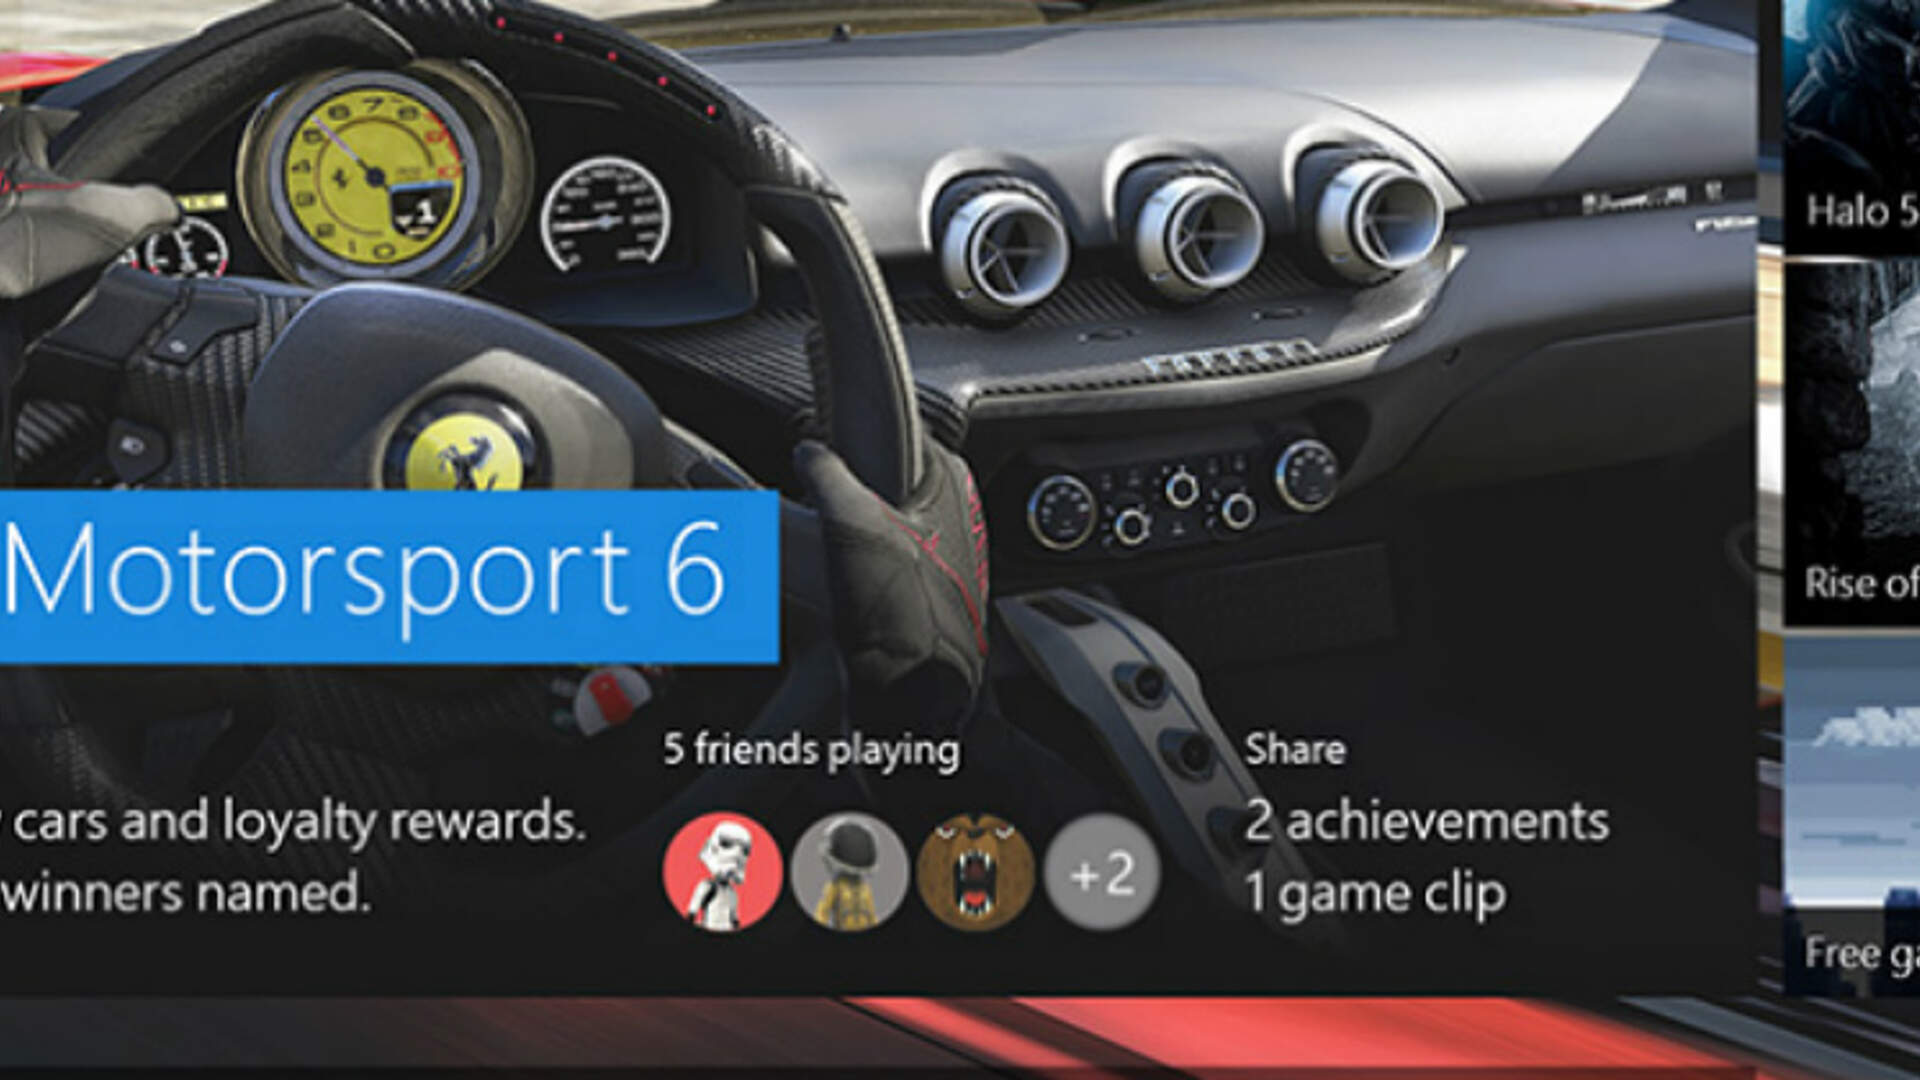 The New Xbox One Experience Improves, Still Missing Some Features